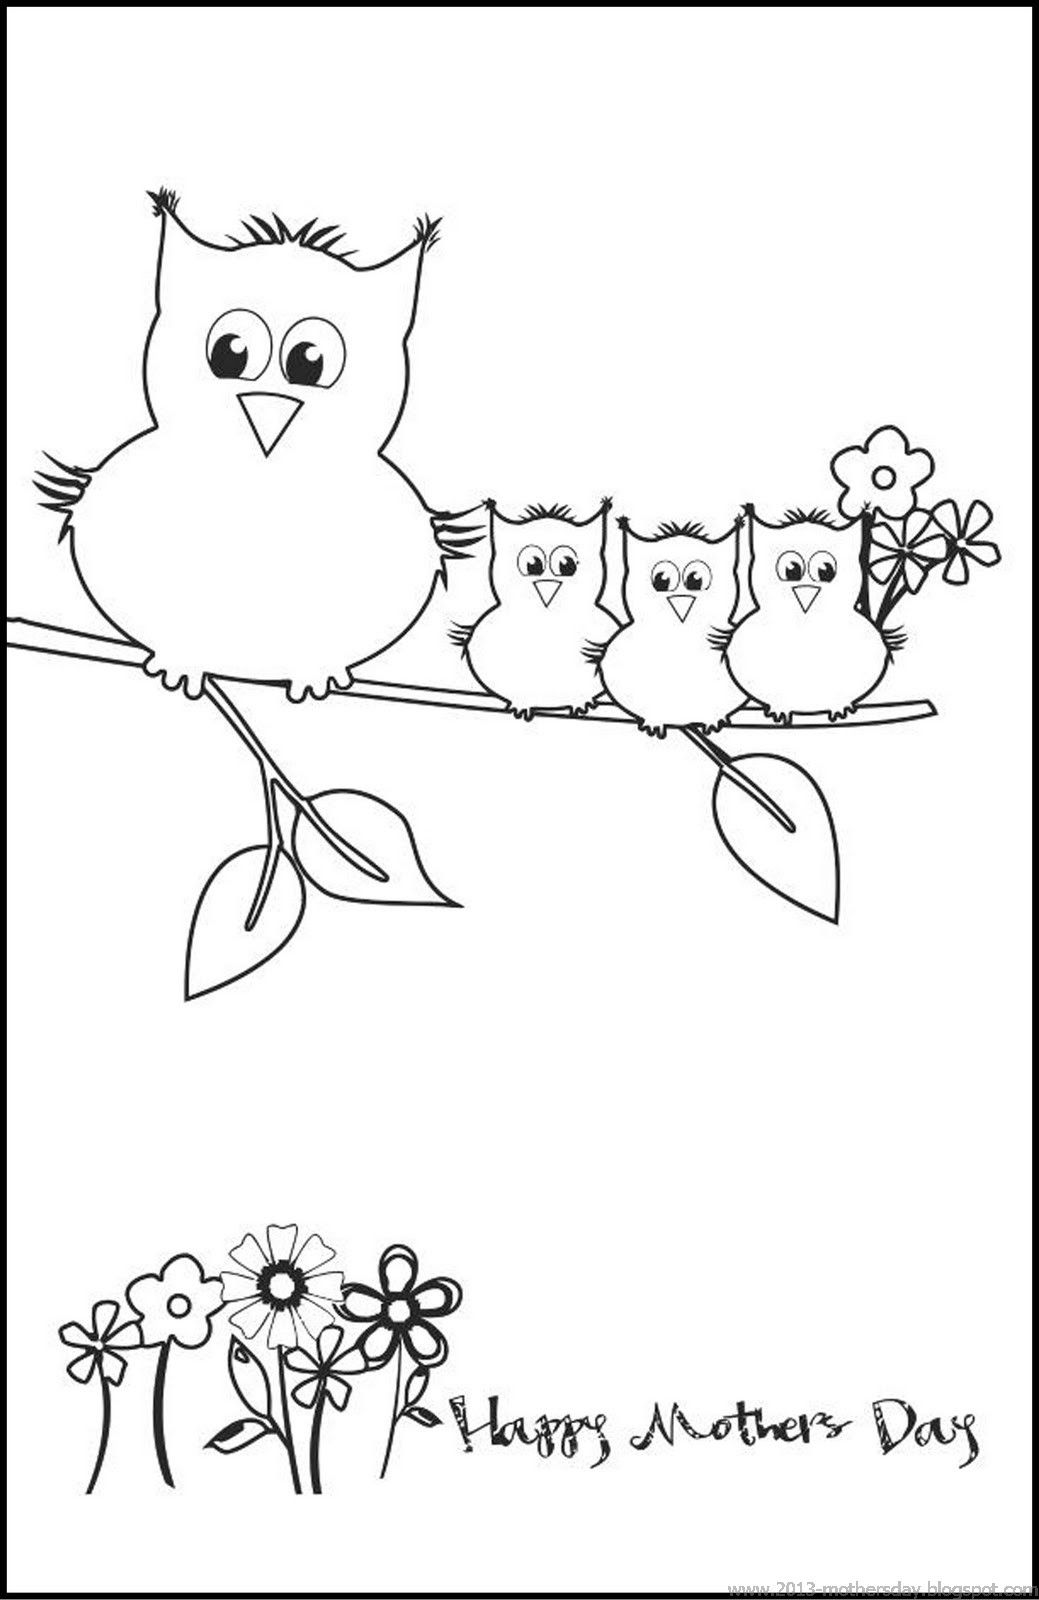 Mothers day coloring sheets for sunday school - Mother S Day Cards To Print Printable Mothers Day Card For Mom